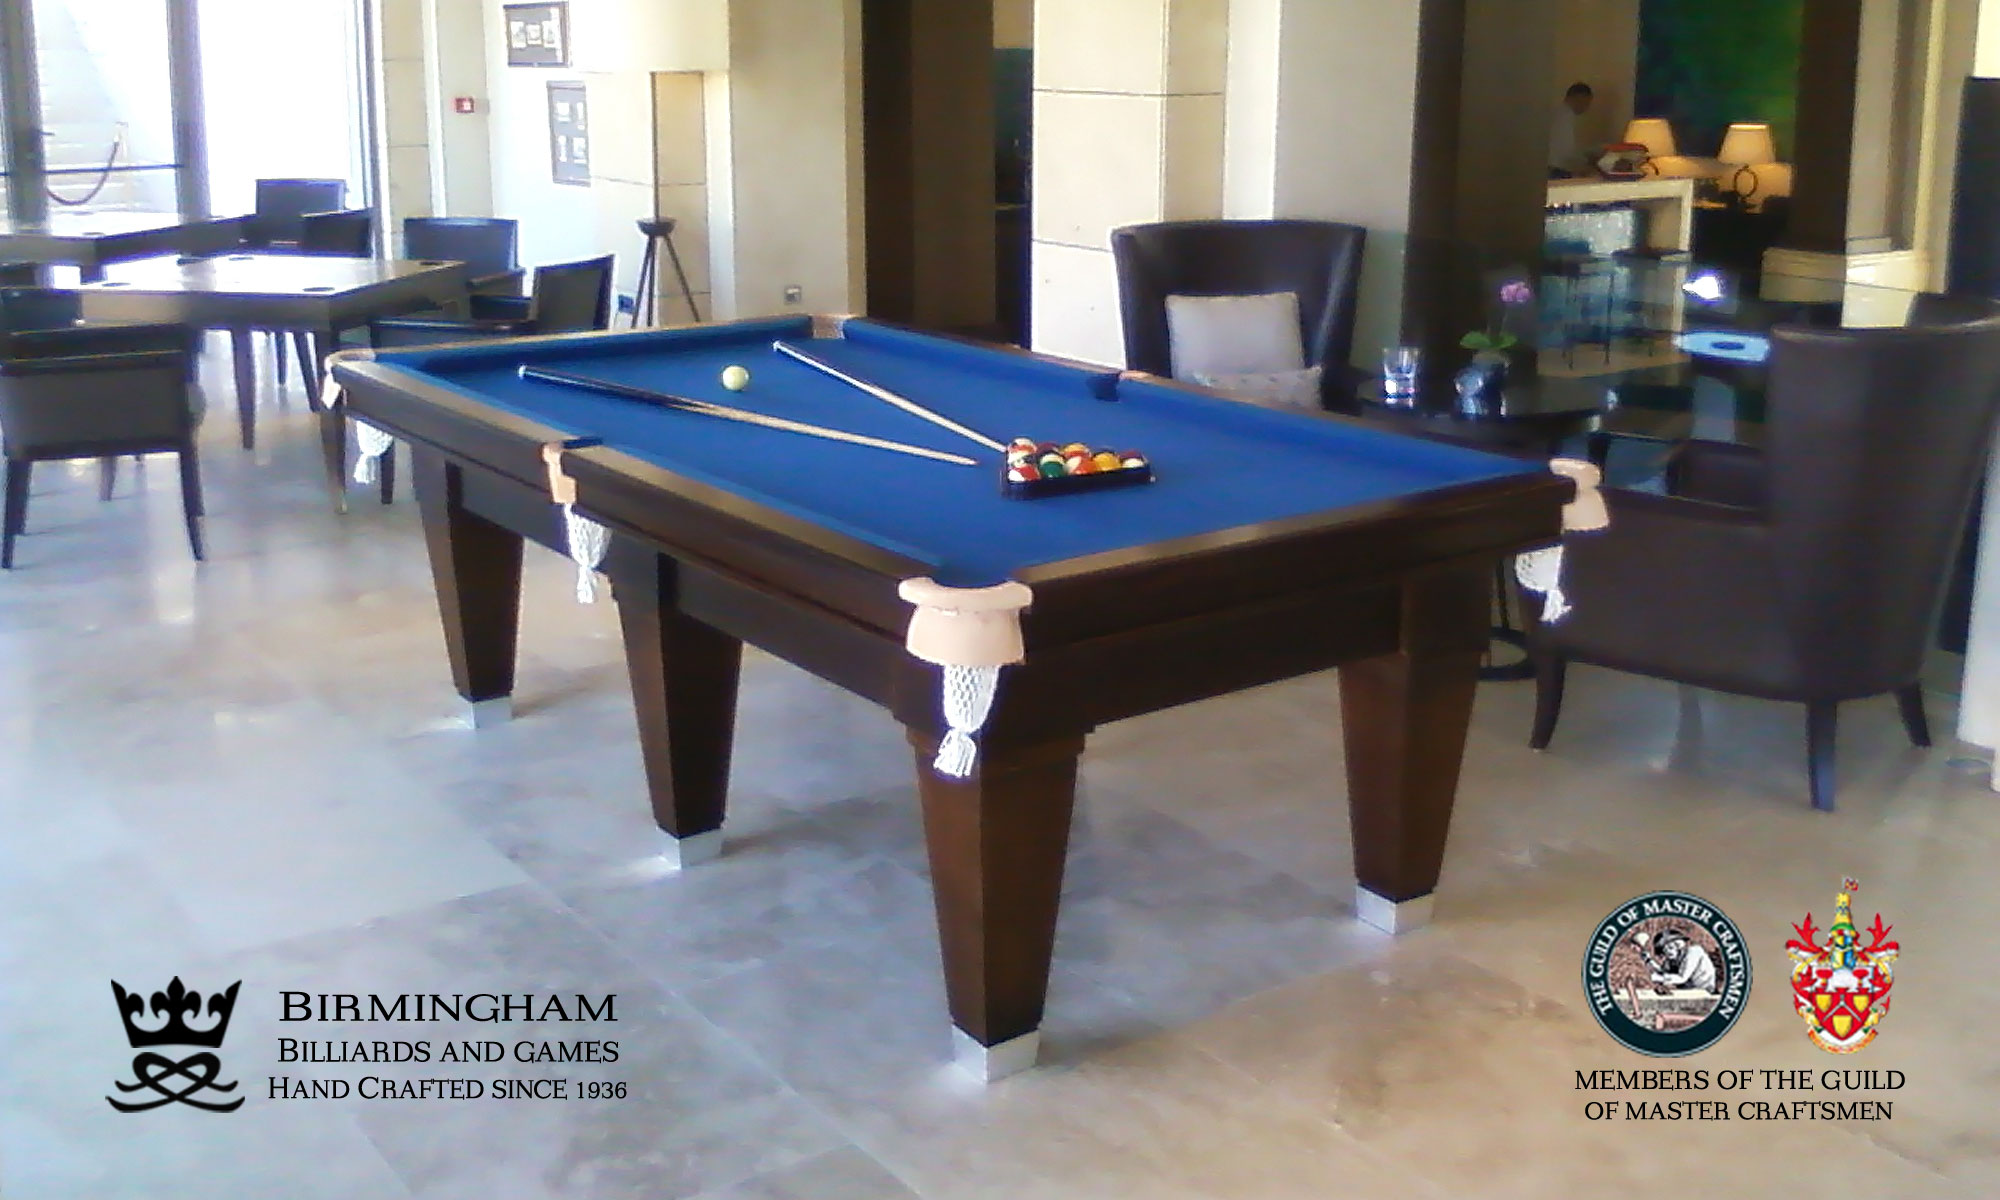 The Olympic hand made pool tables